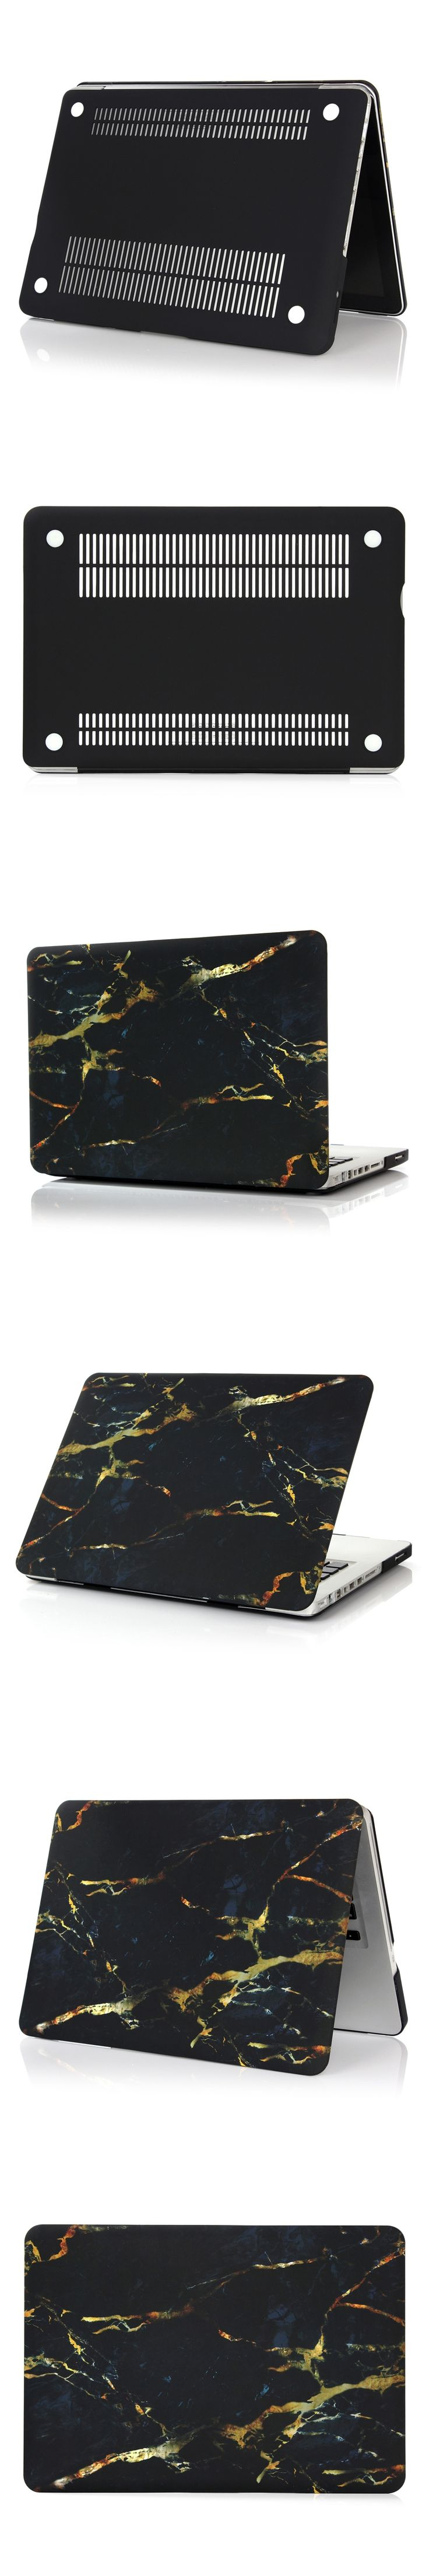 For macbook pro 15 case marble A1286 laptop shell protective cover for macbook 15 pro bag mac book 15.4 inch coque sleeve